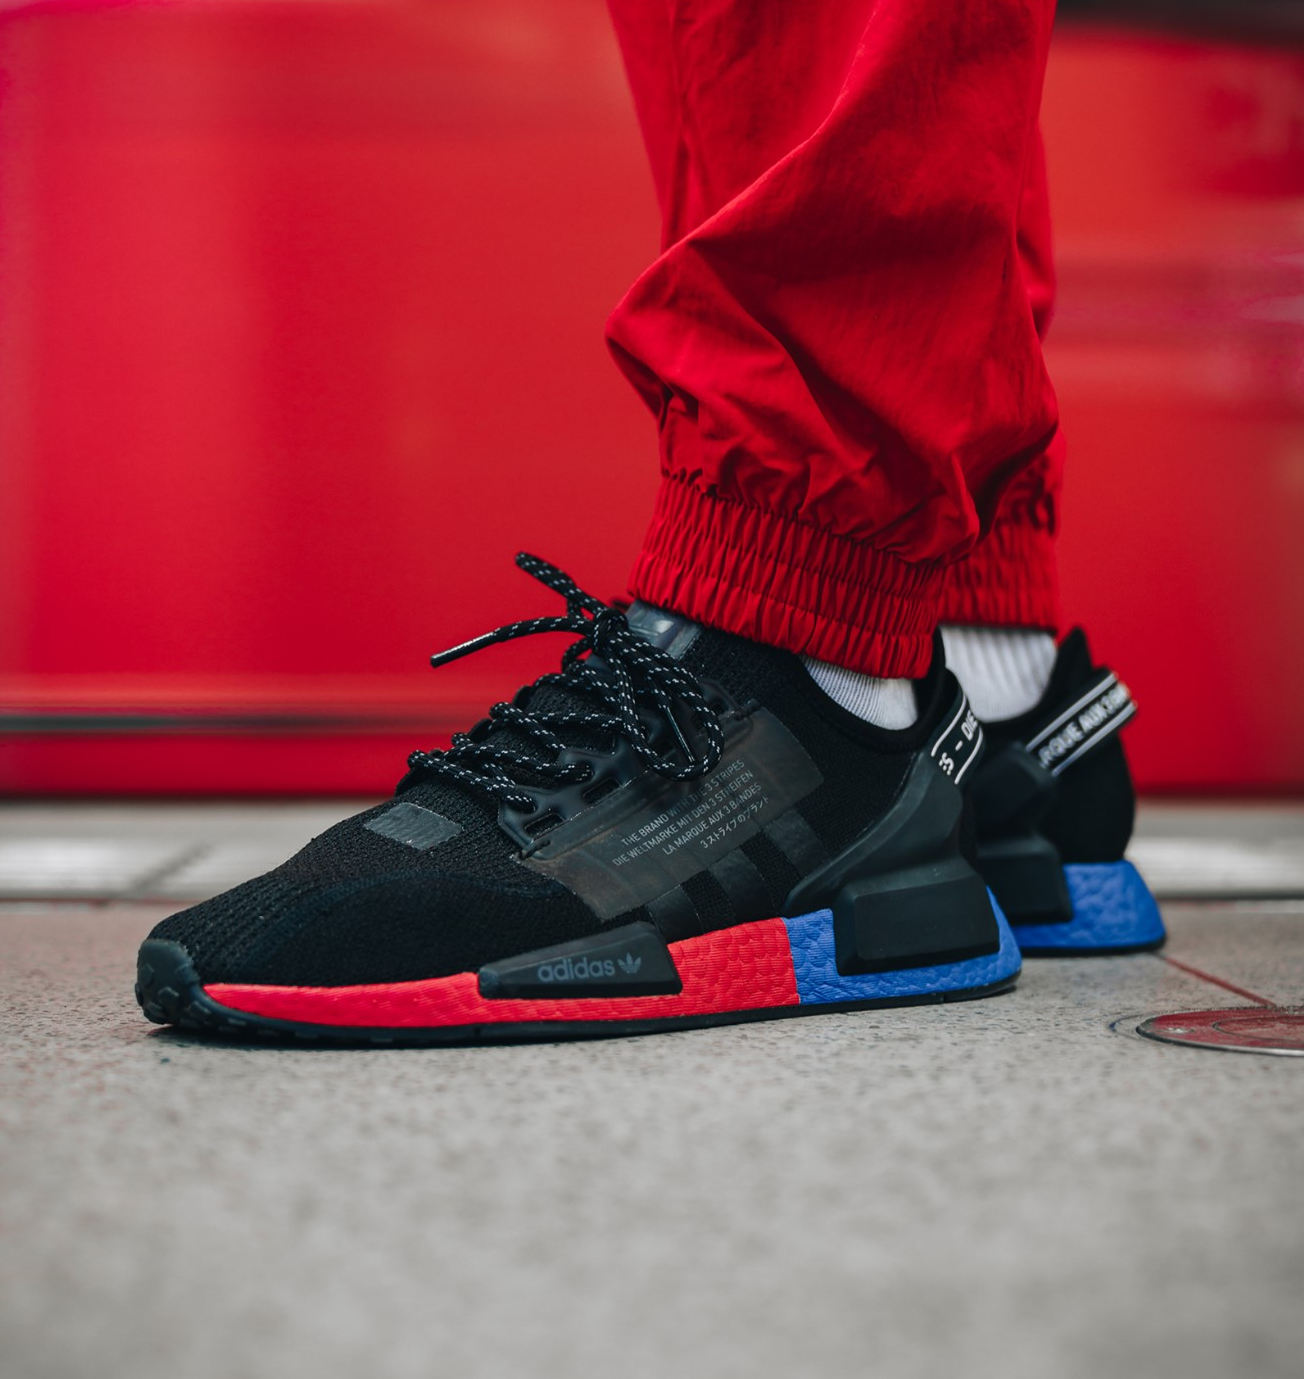 On Sale Adidas Nmd R1 V2 Black Carbon Sneaker Shouts